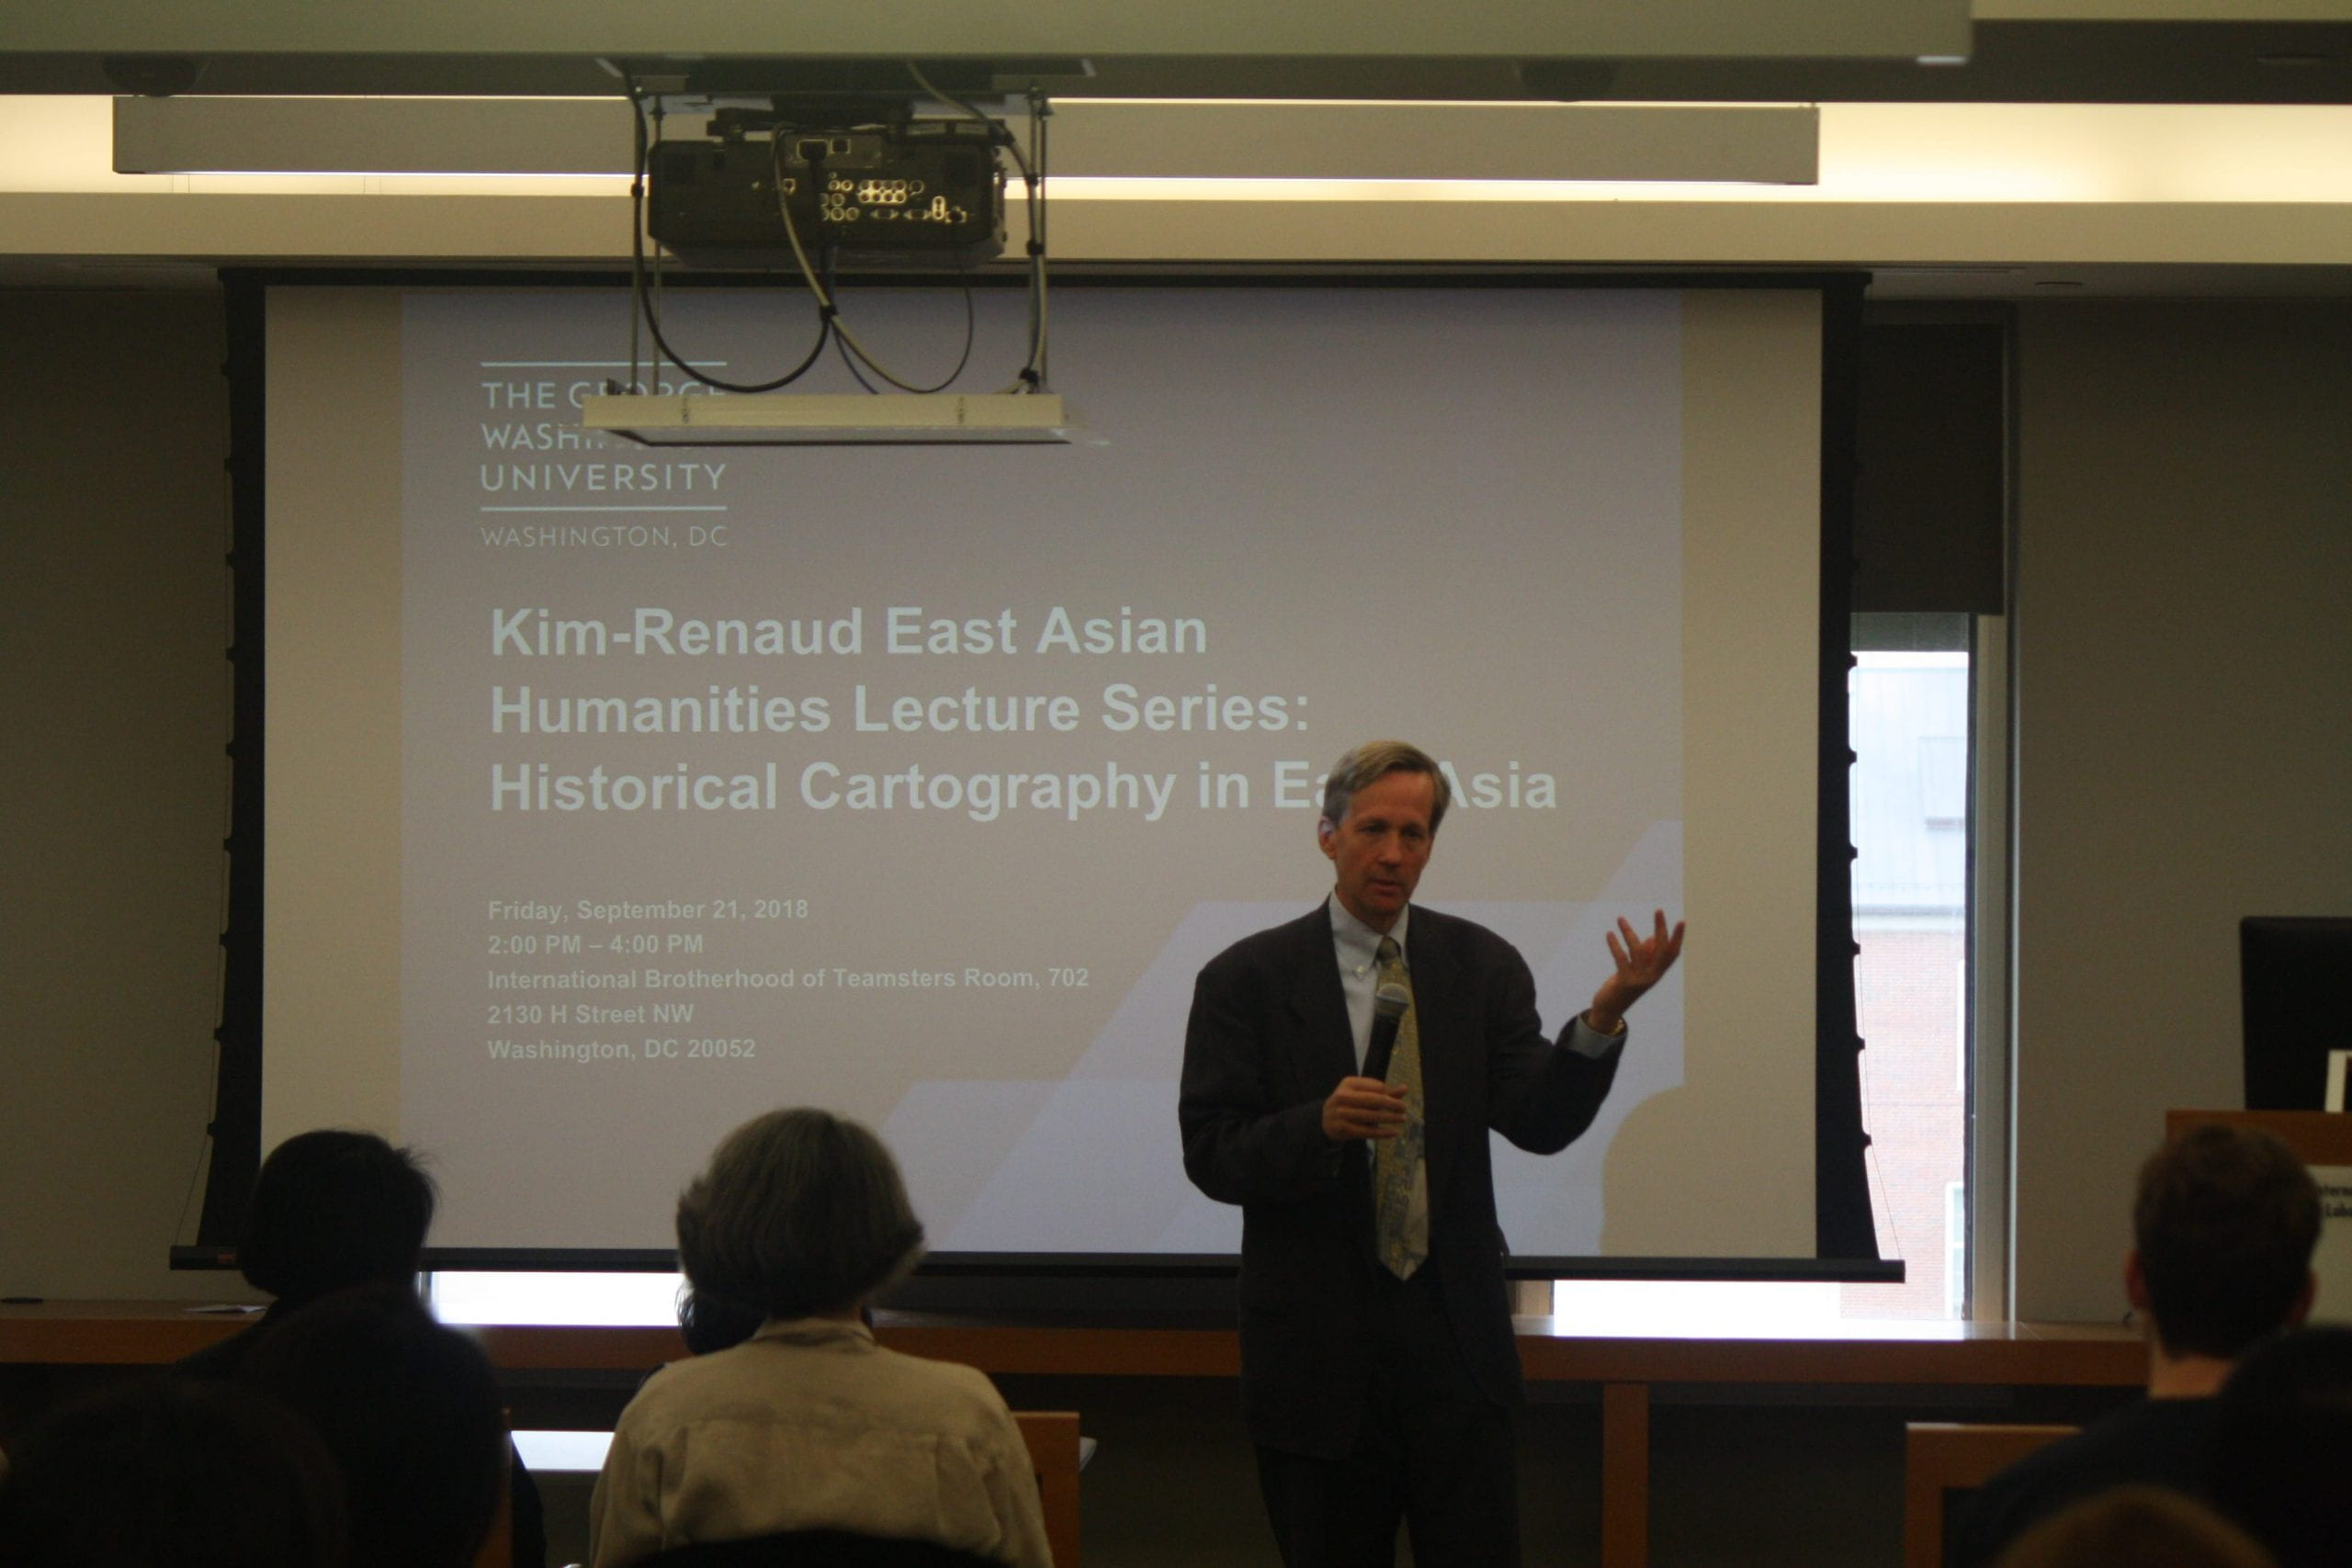 """Dr. Richard Pegg speaking at the """"Historical Cartography in East Asia"""" public event held on September 21, 2018."""